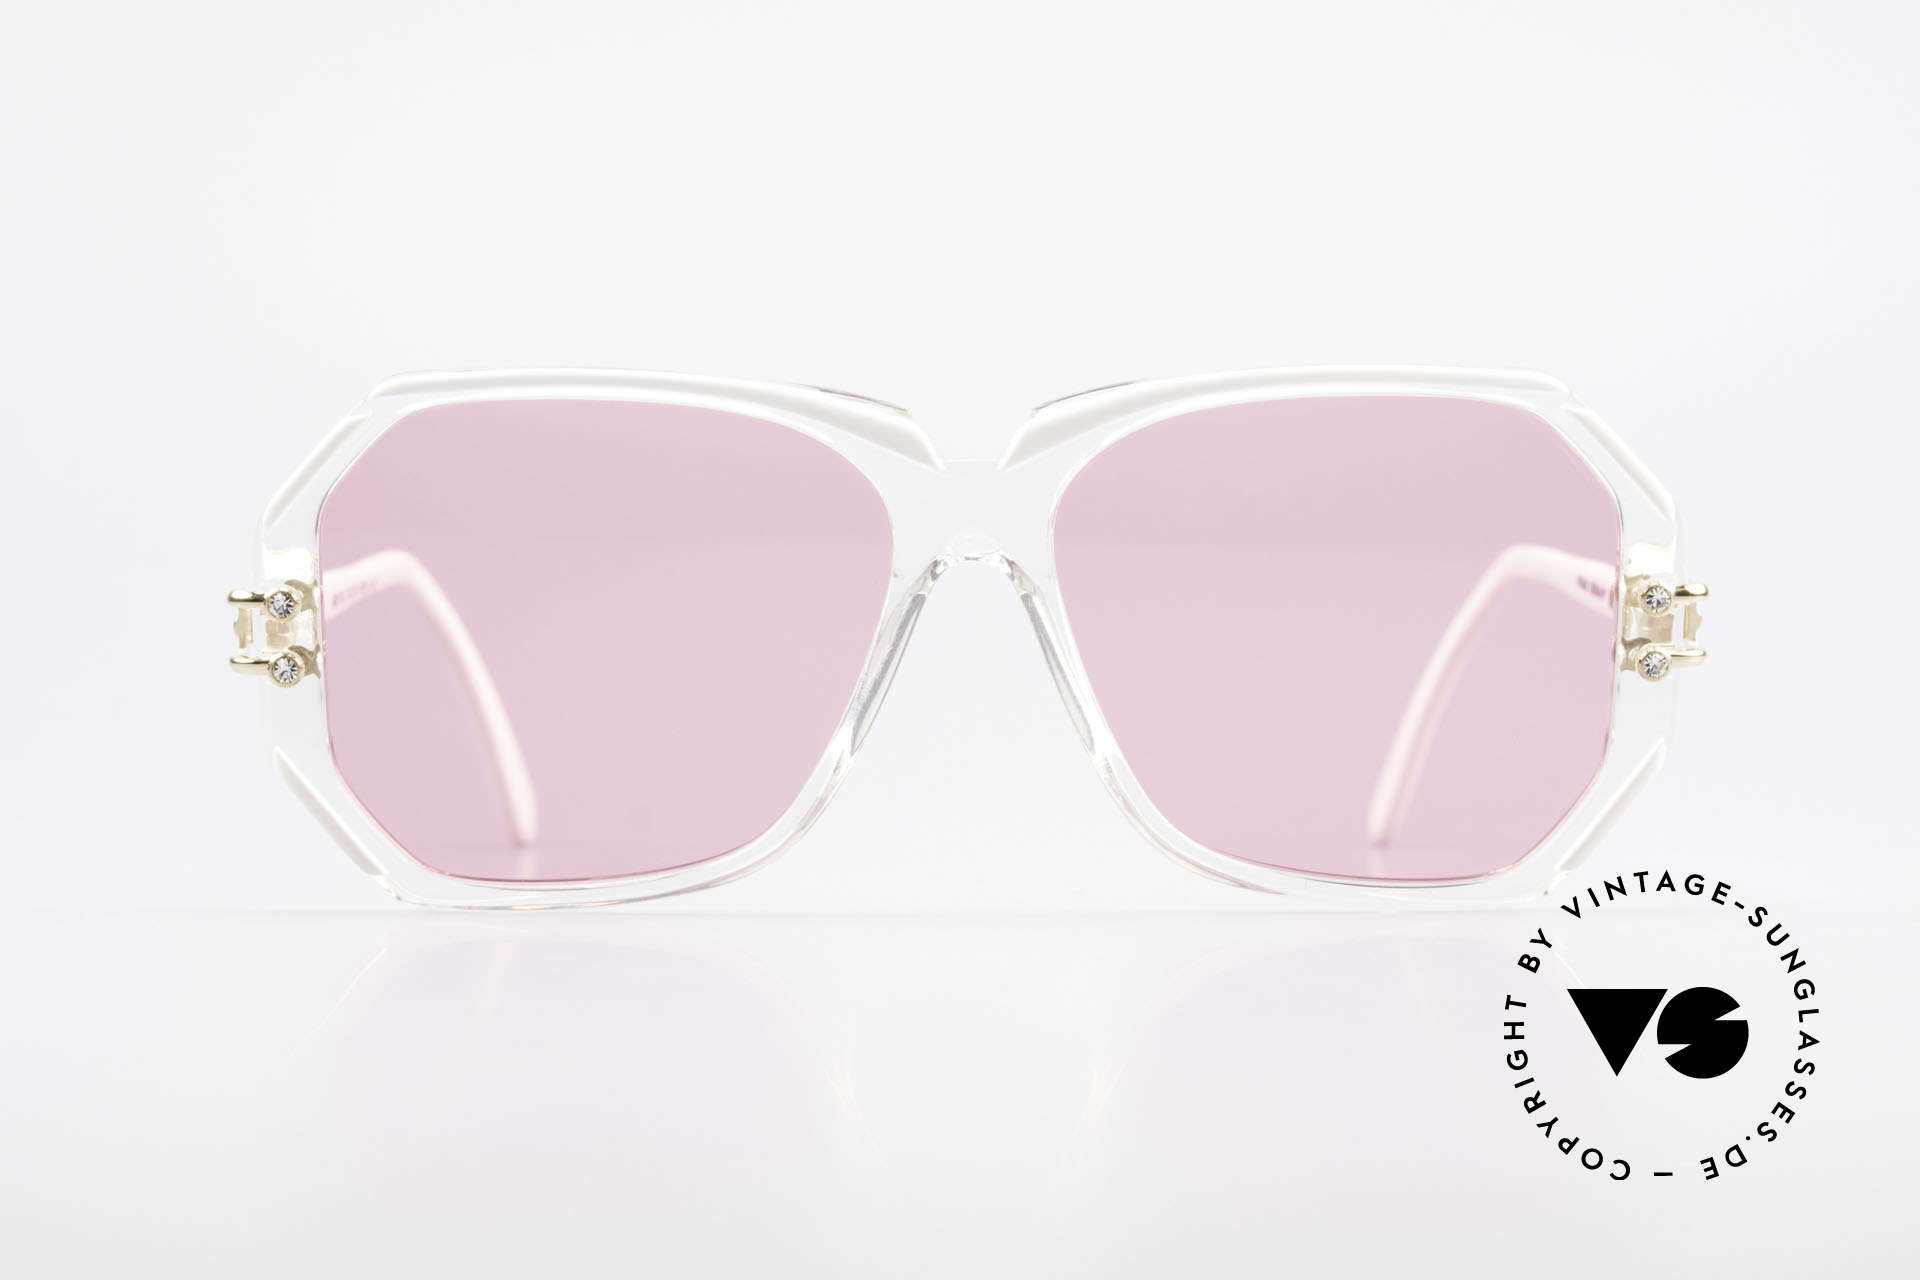 Cazal 169 Pink Vintage Designer Shades, hand made around 1989/1990 (FRAME GERMANY), Made for Women